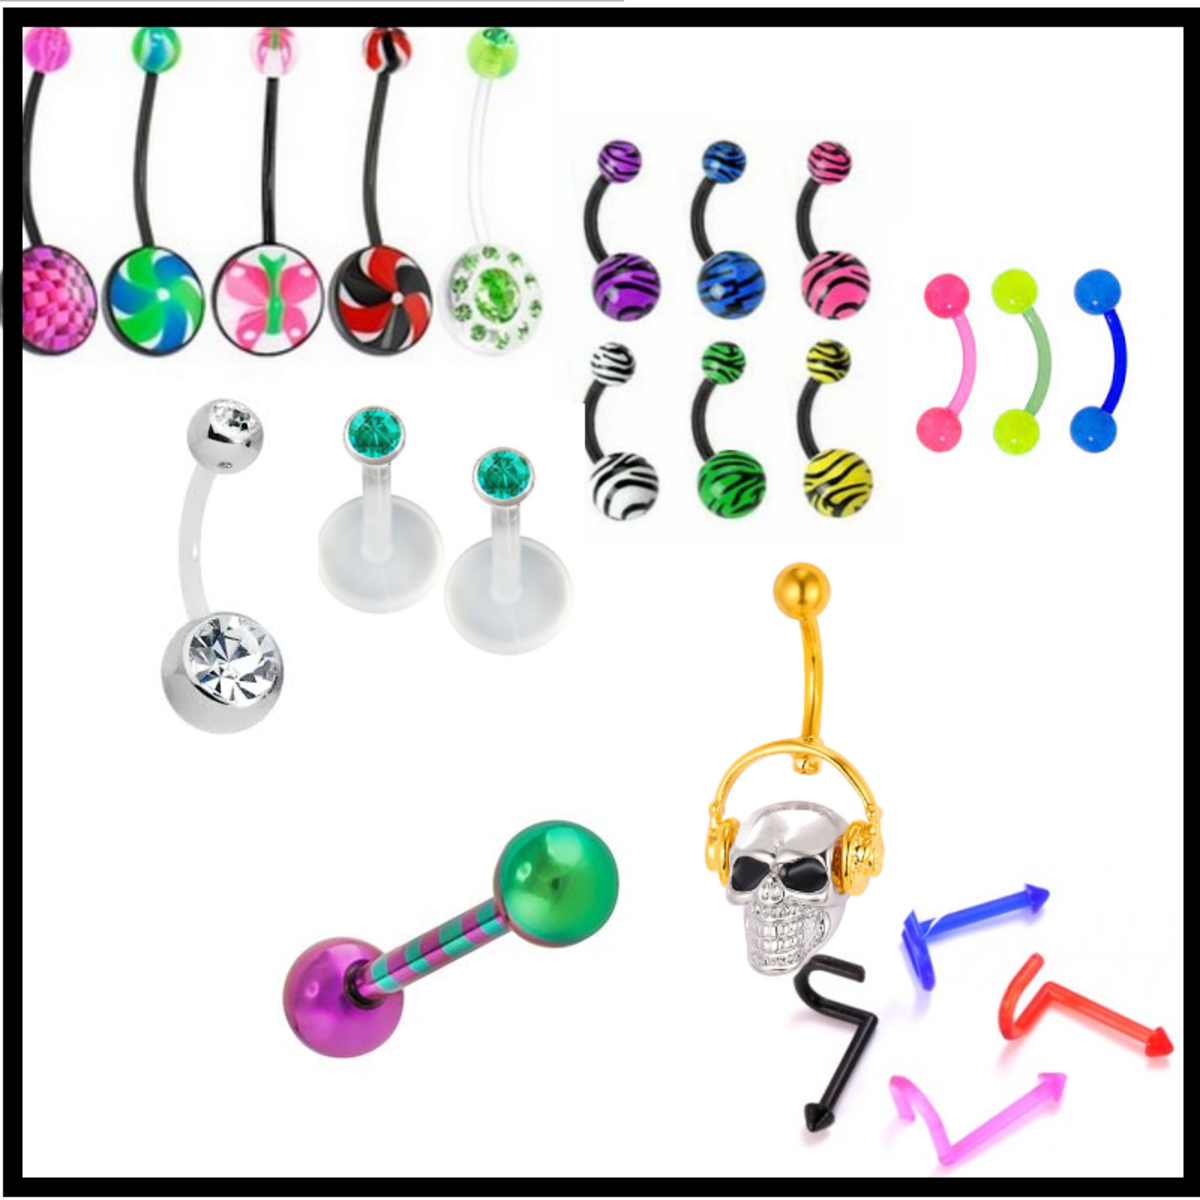 Body friendly bioplast is designed for people with allergies that use body jewelry. It comes in many different colors in all shapes and sizes.